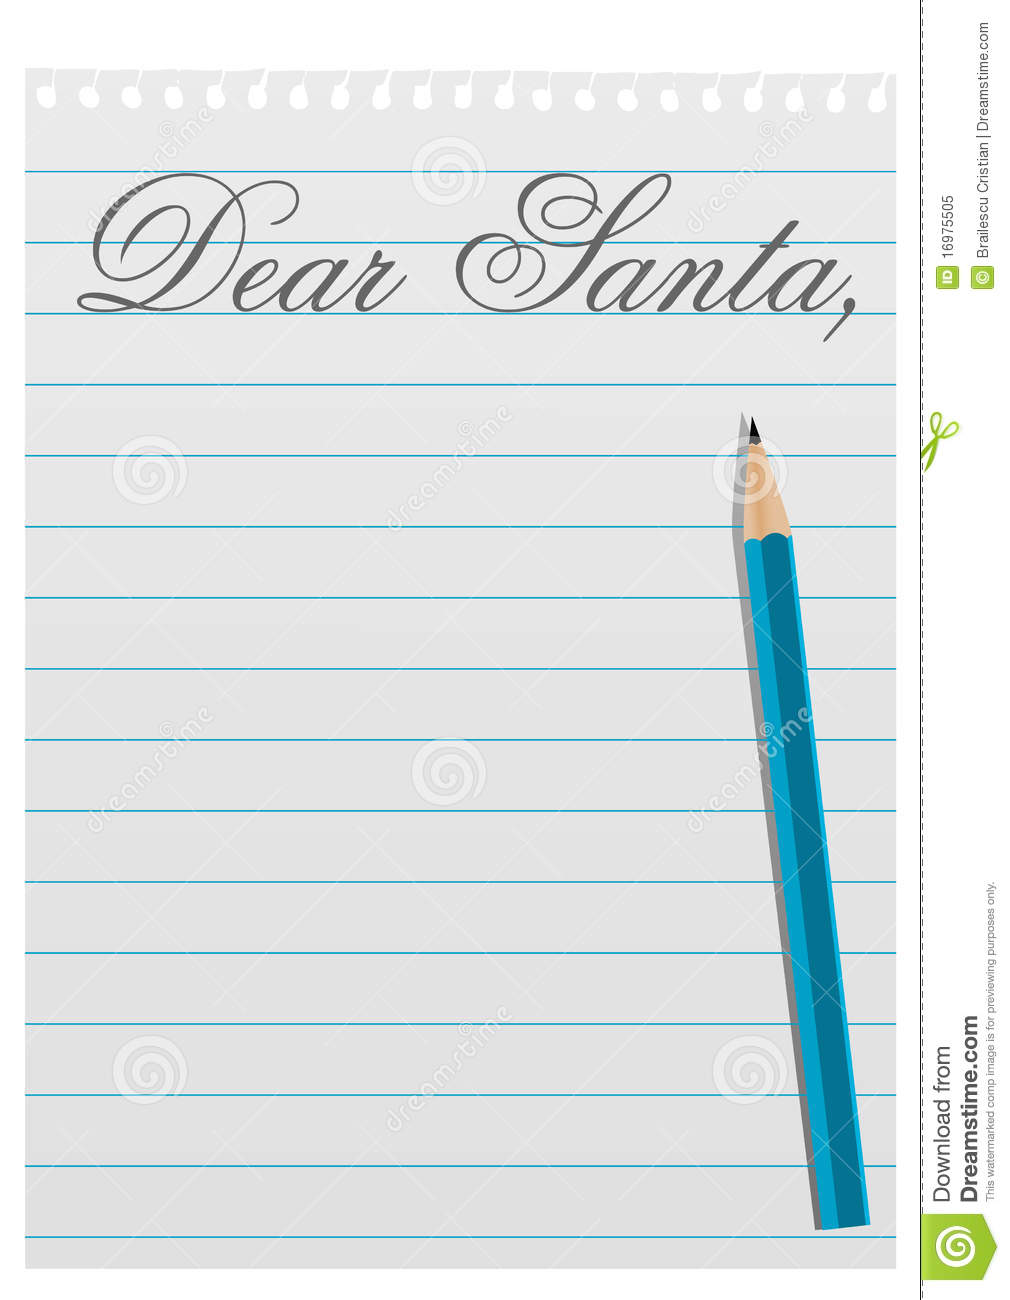 search results for santa letter background calendar 2015 search results for free printable etter from santa 126